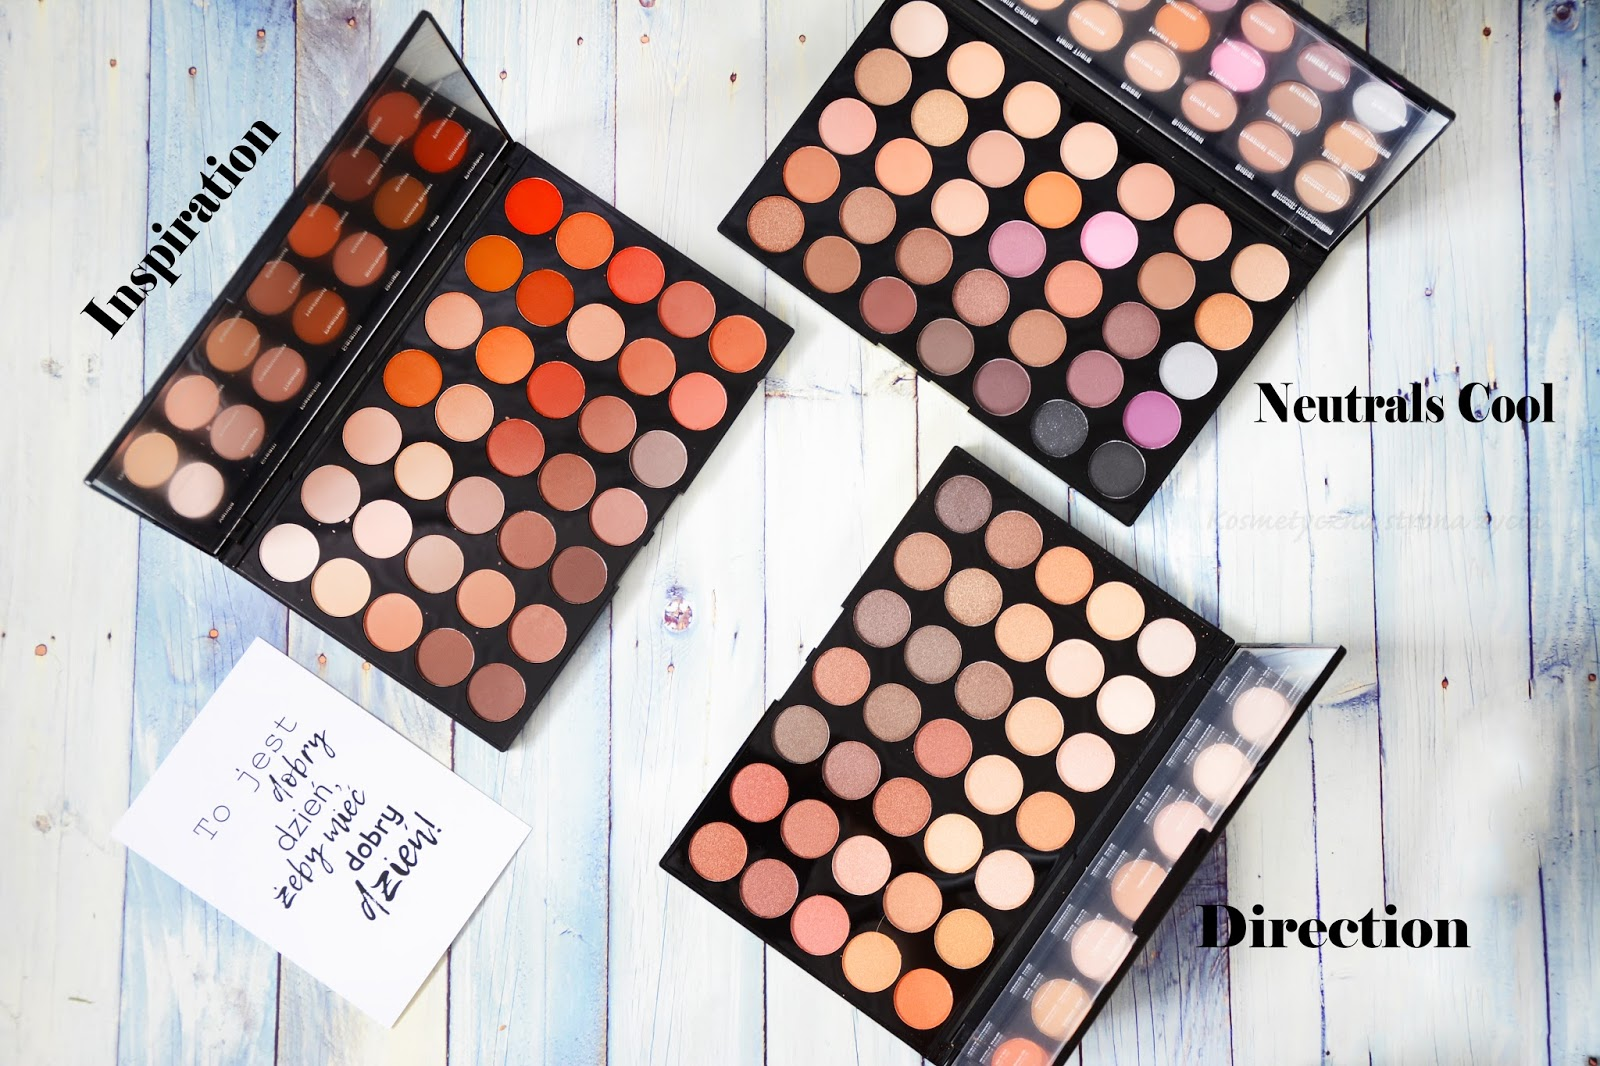 MAKEUP REVOLUTION PALETY INSPIRATION, NEUTRALS COOL ORAZ DIRECTION